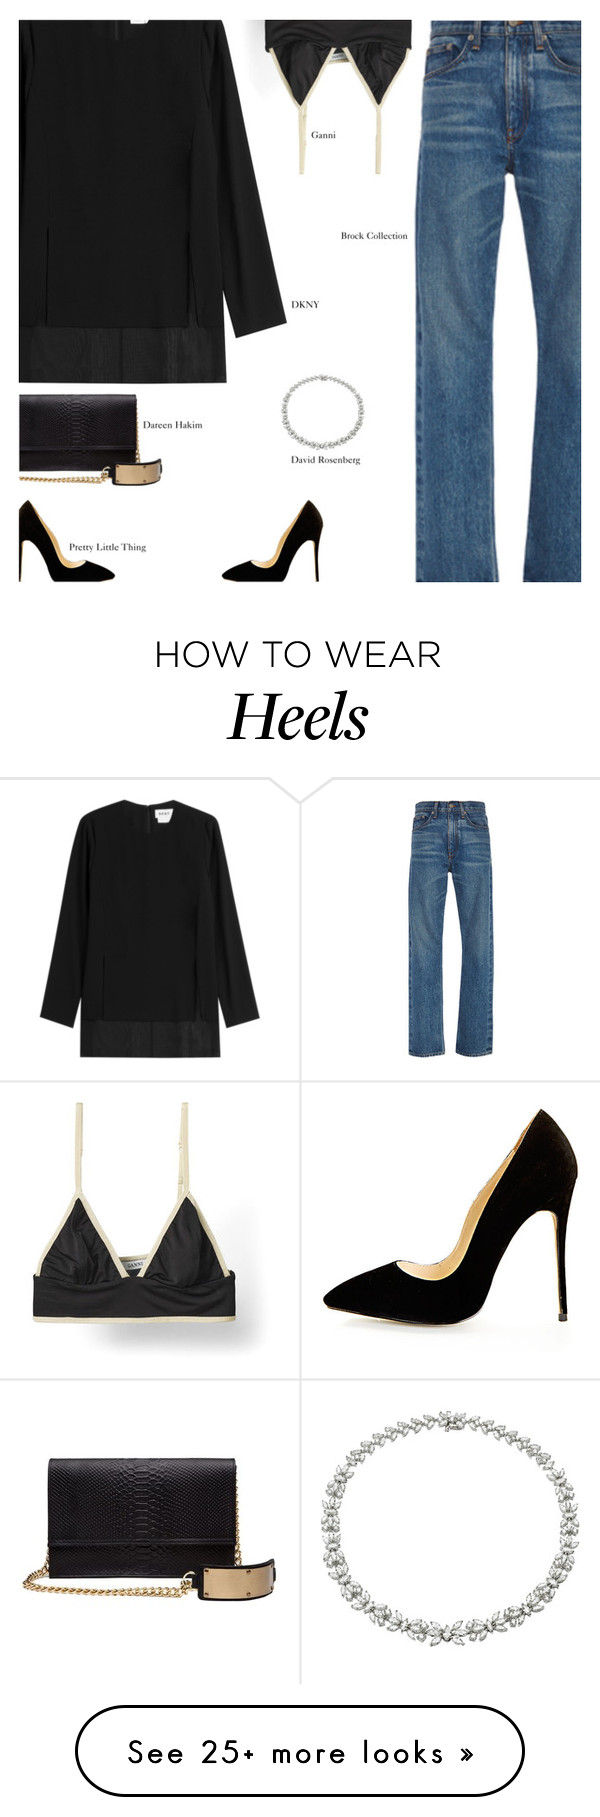 """""""Friday"""" by amberelb on Polyvore featuring Brock Collection, DKNY and Dareen Hakim"""